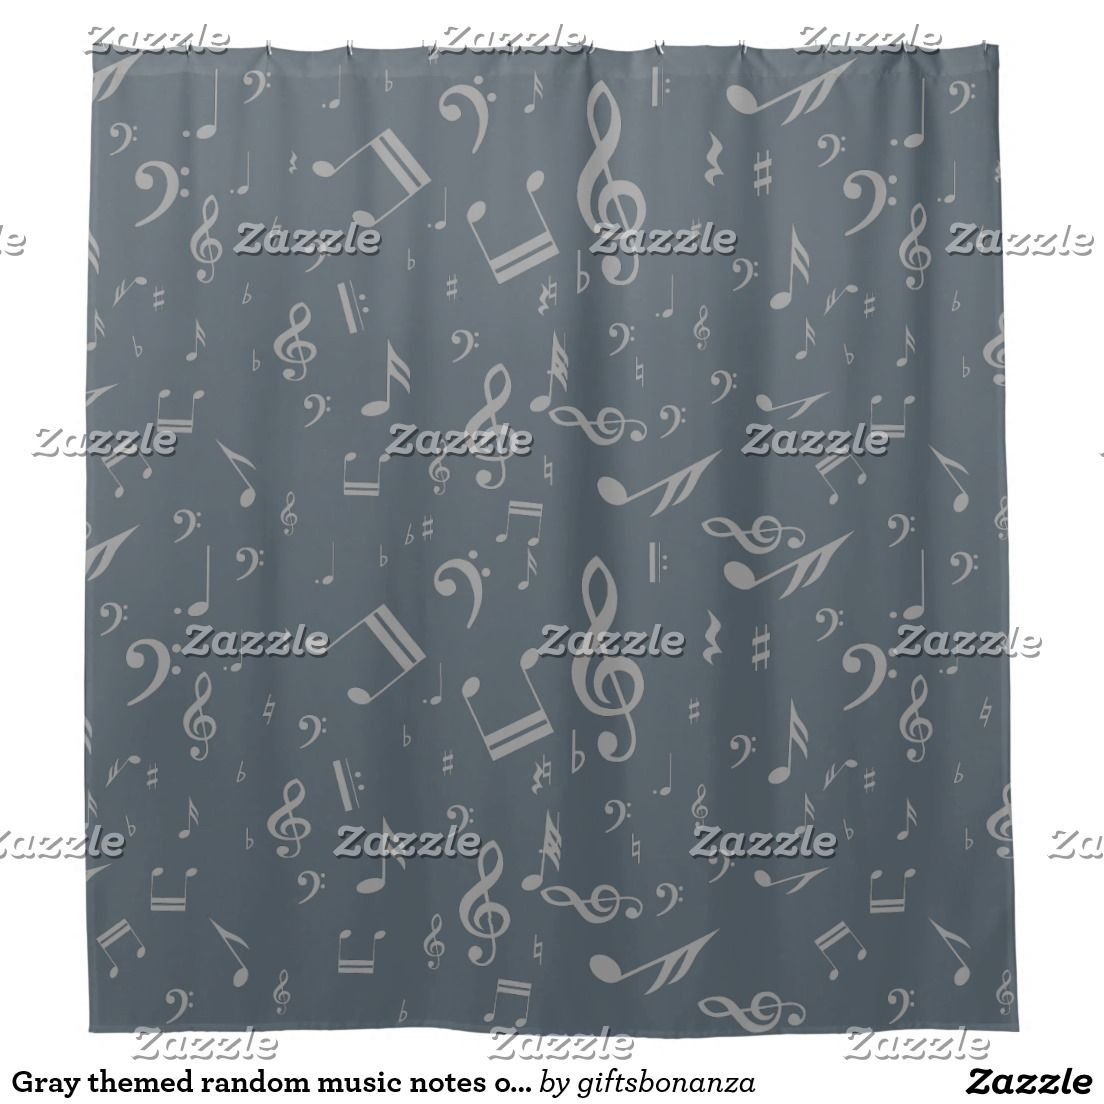 Bring A Touch Of Gray Into Your Bathroom Decor With This Random Gray Music  Notes Designer Shower Curtain Complemented By Calming Cool Gray Stormy  Weather ...